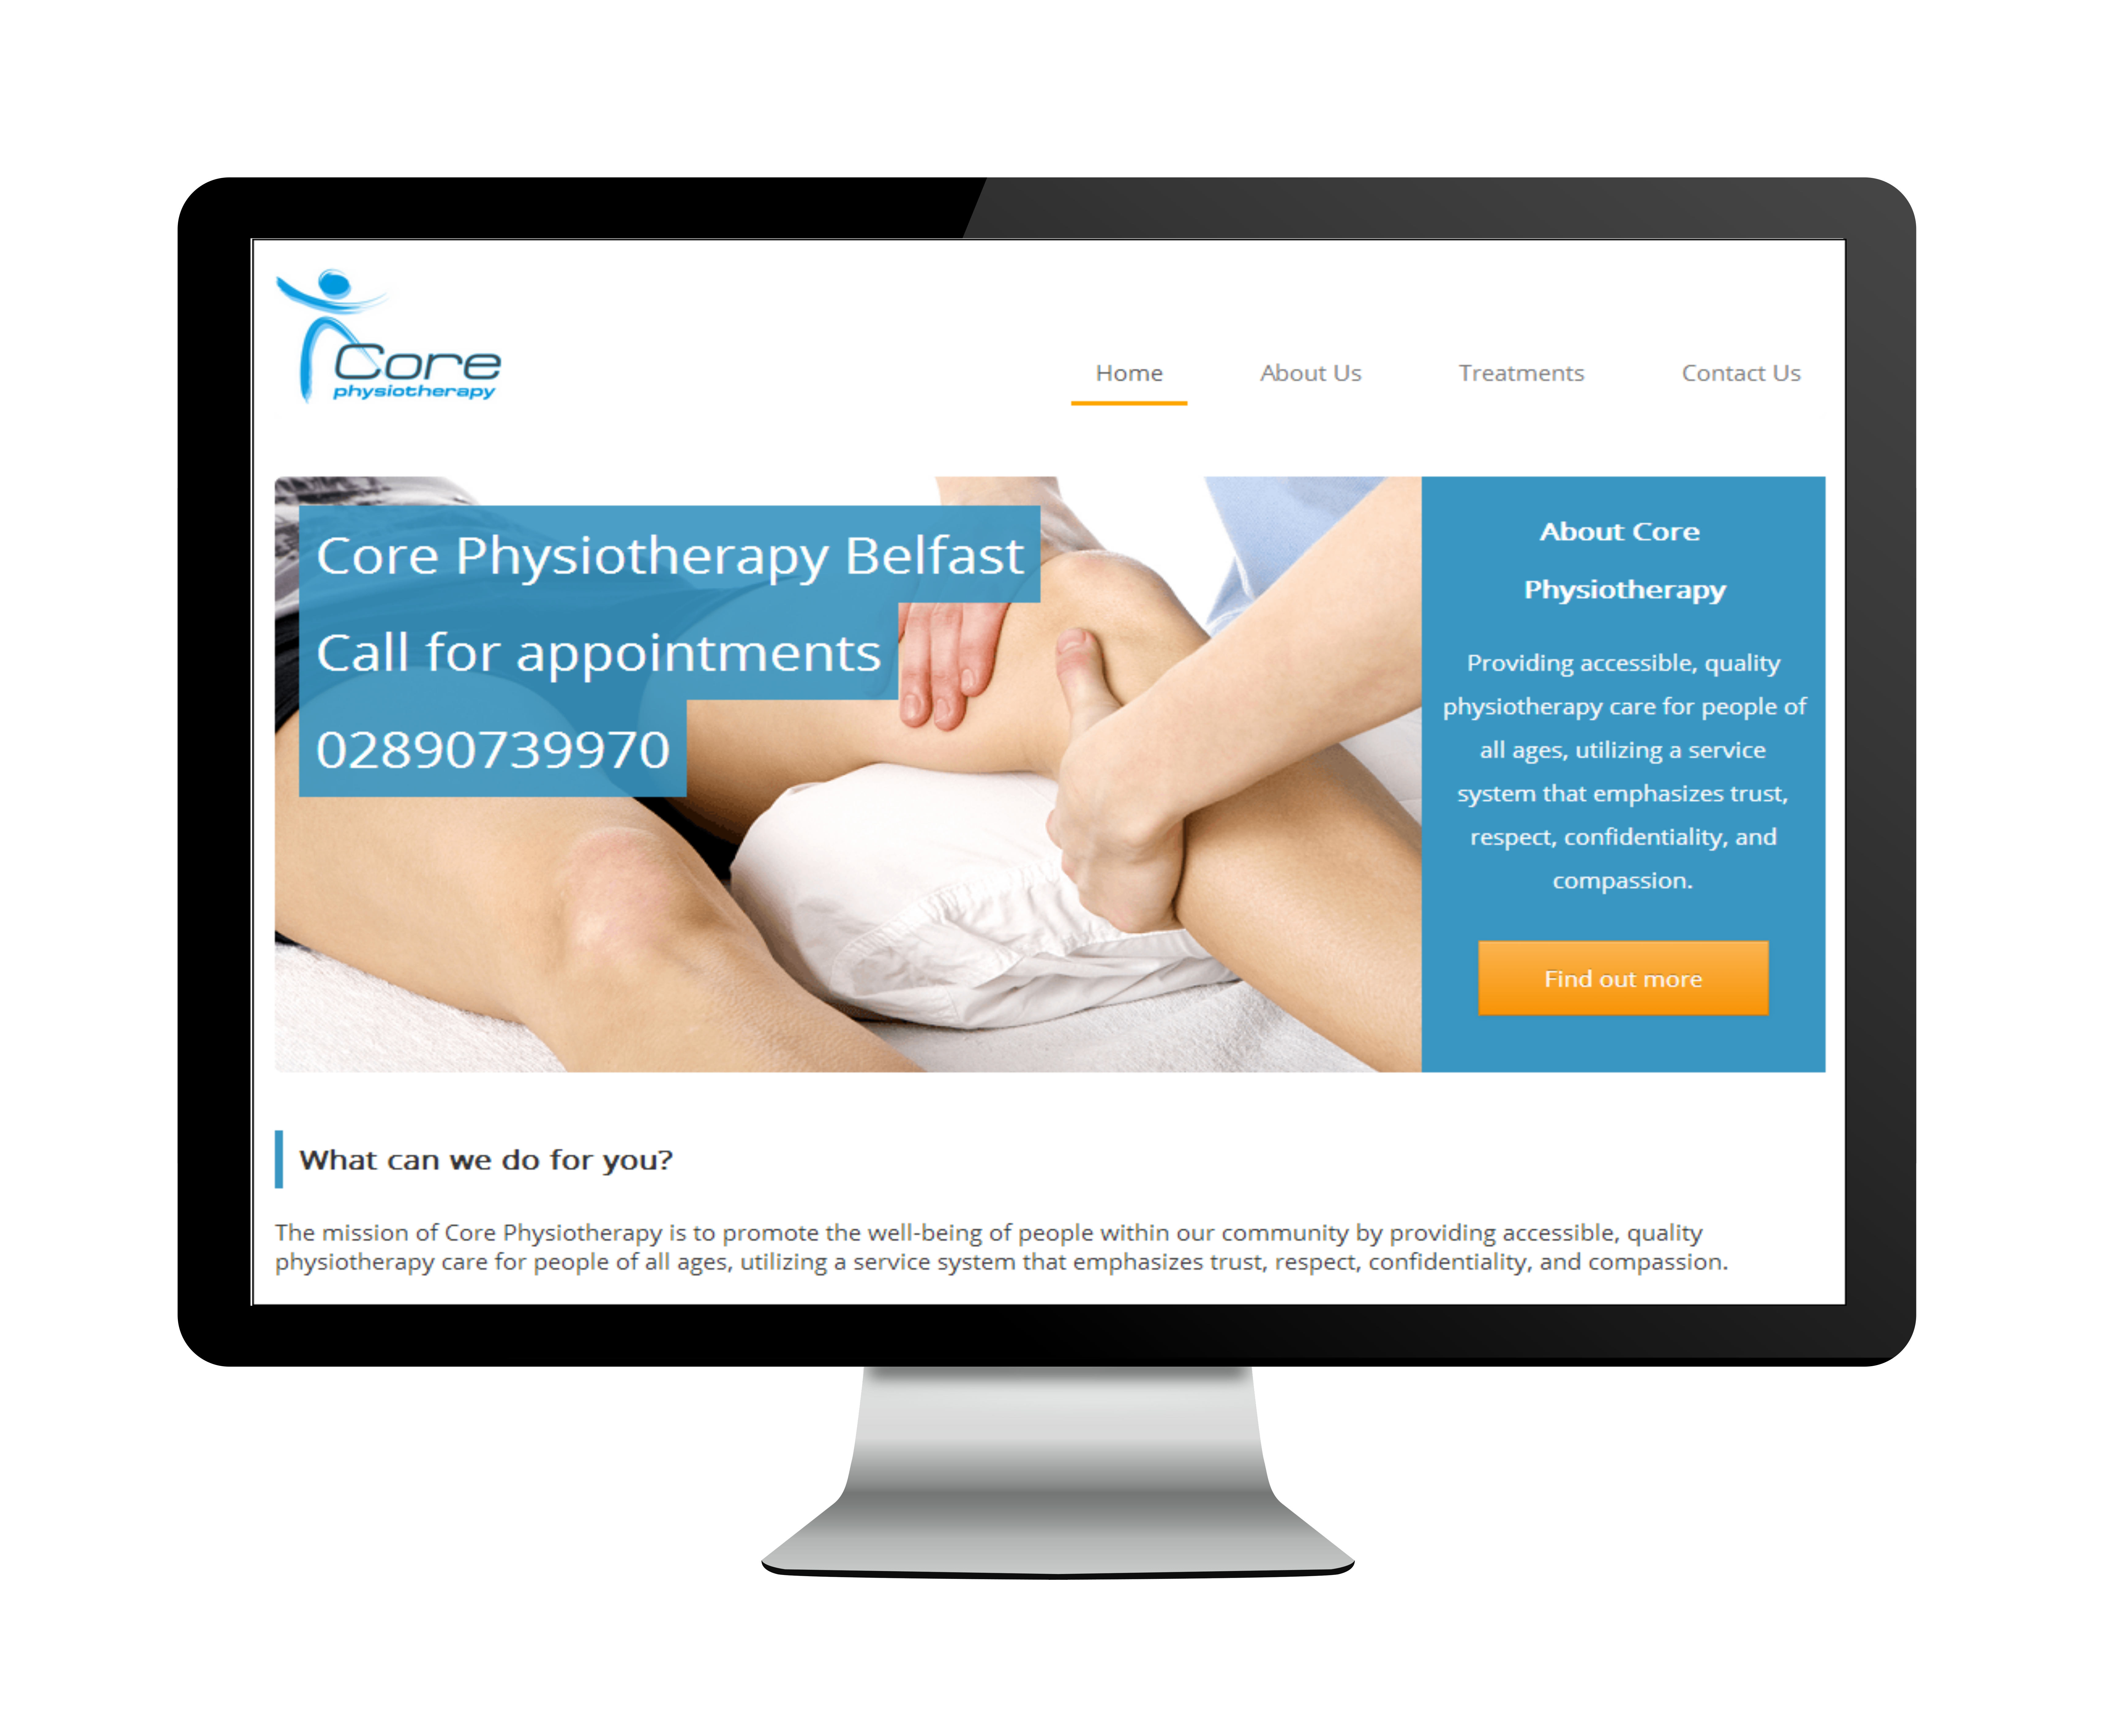 Core Physio Belfast Website Image